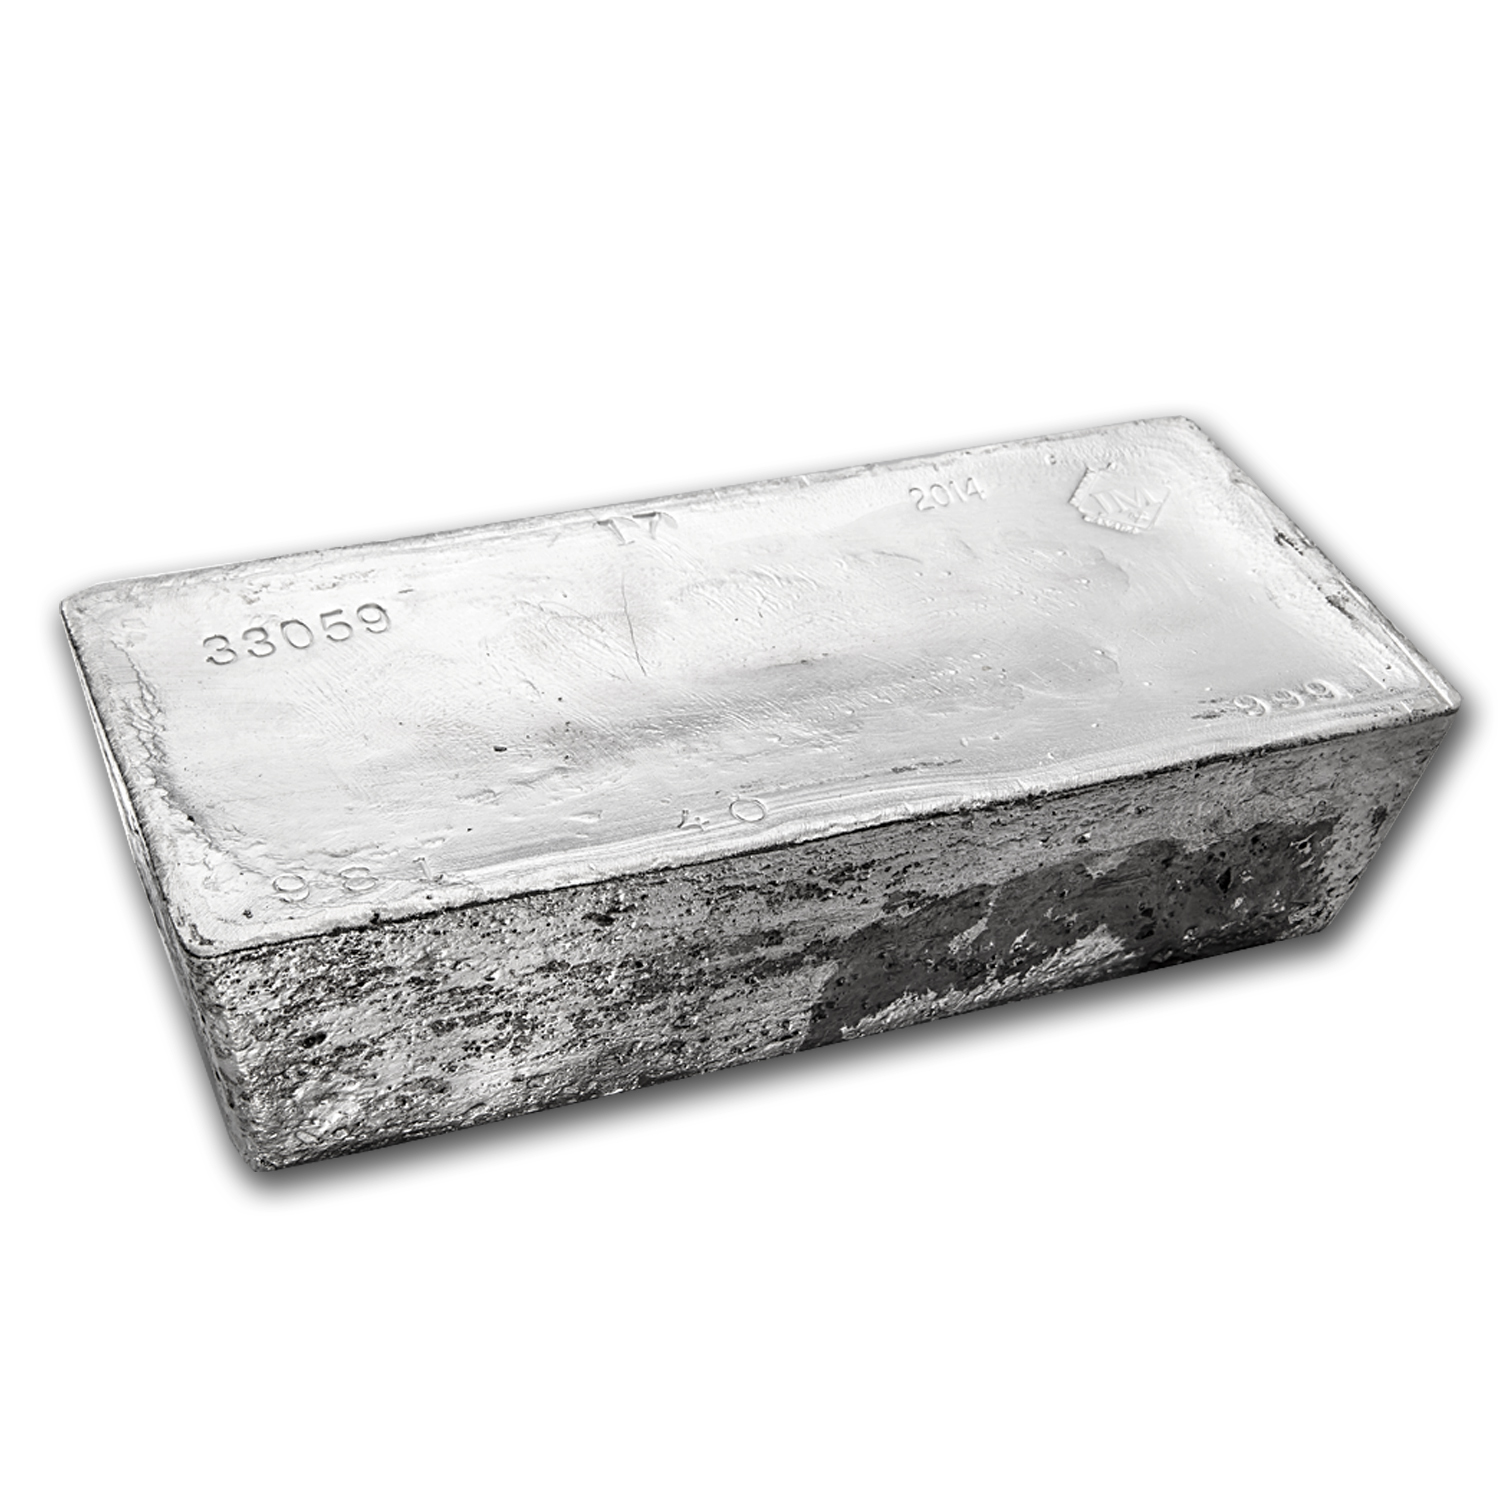 1014.605 oz Silver Bar - OPM (#1200608) (3/30)